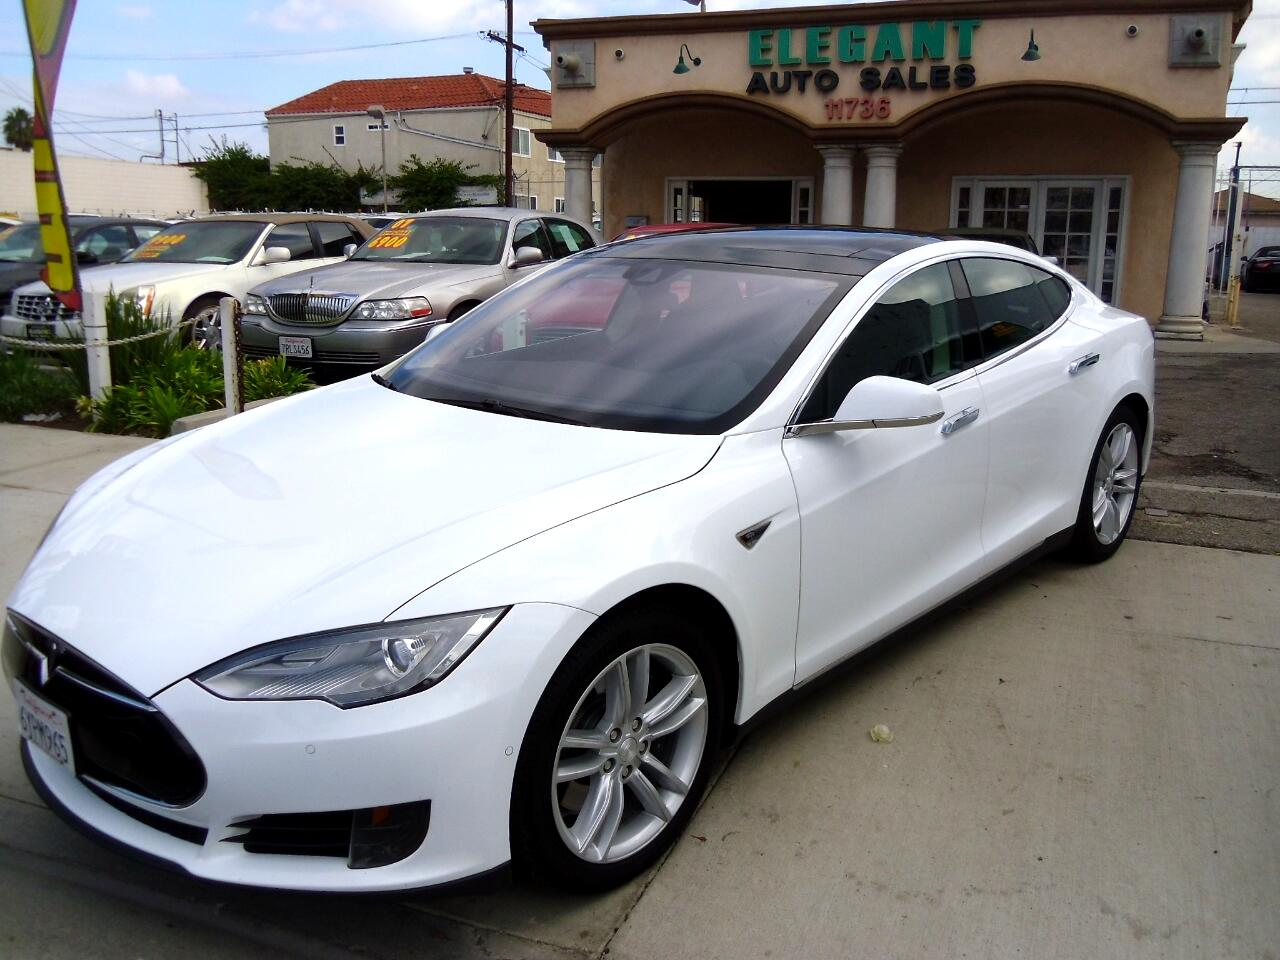 2016 Tesla Model S 4dr Sdn RWD 70 kWh Battery